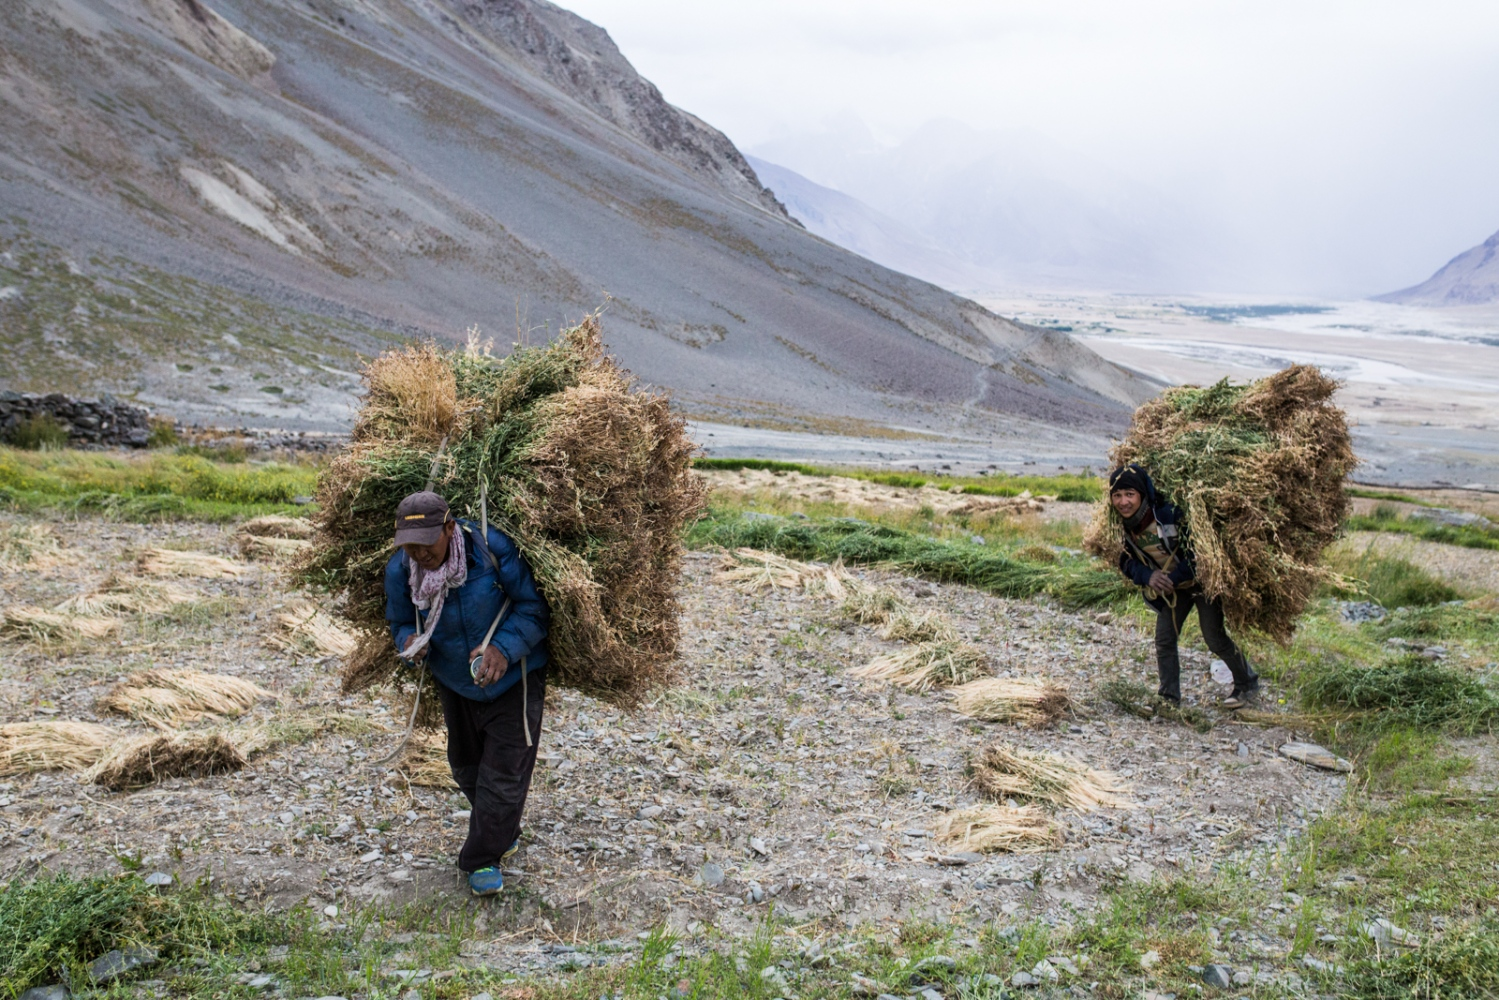 Tashi Stobdan and a hired Nepali migrant worker carry the leftovers of the crop harvest. The fodder is used as food for Kumik's livestock over the winter period.